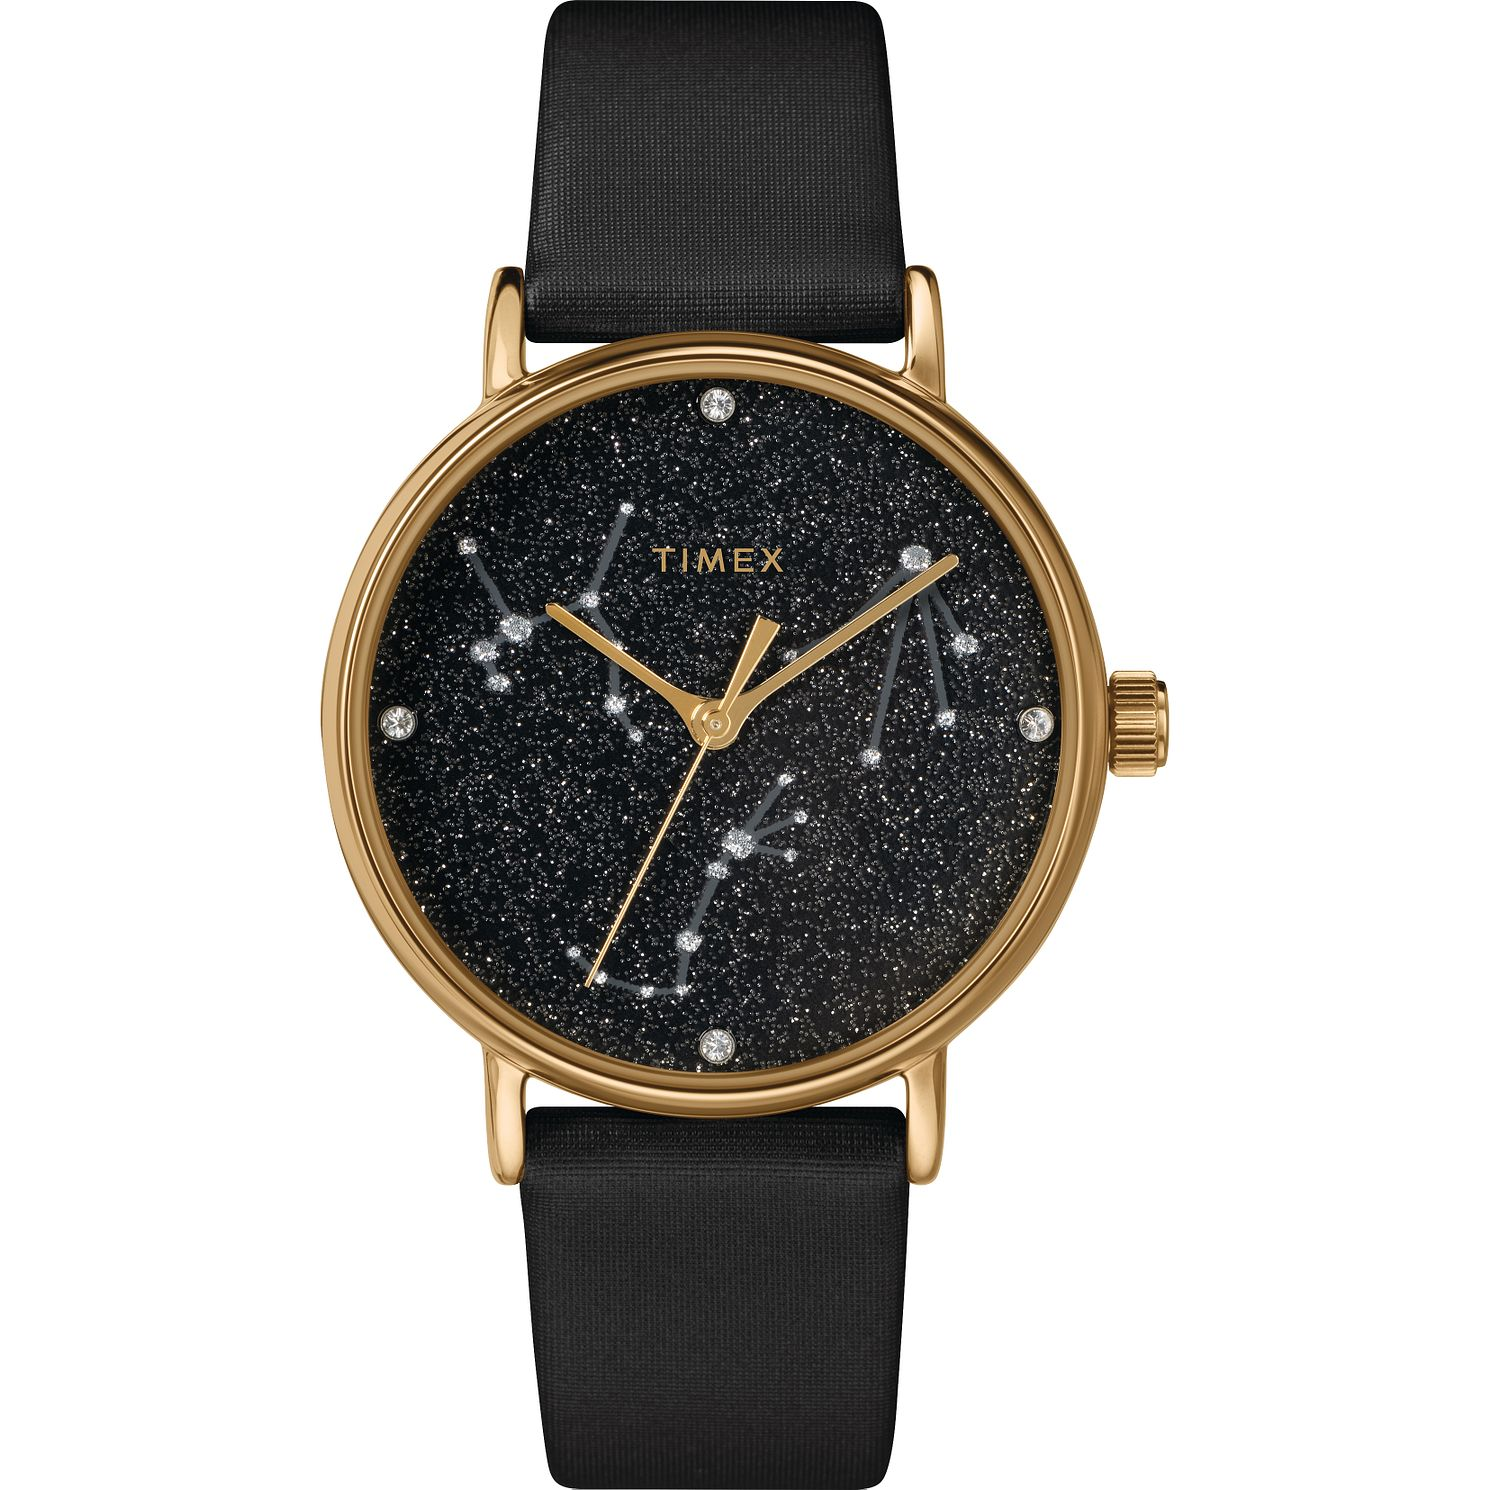 Timex Indiglo Ladies' Black Leather Strap Watch - Product number 4514416